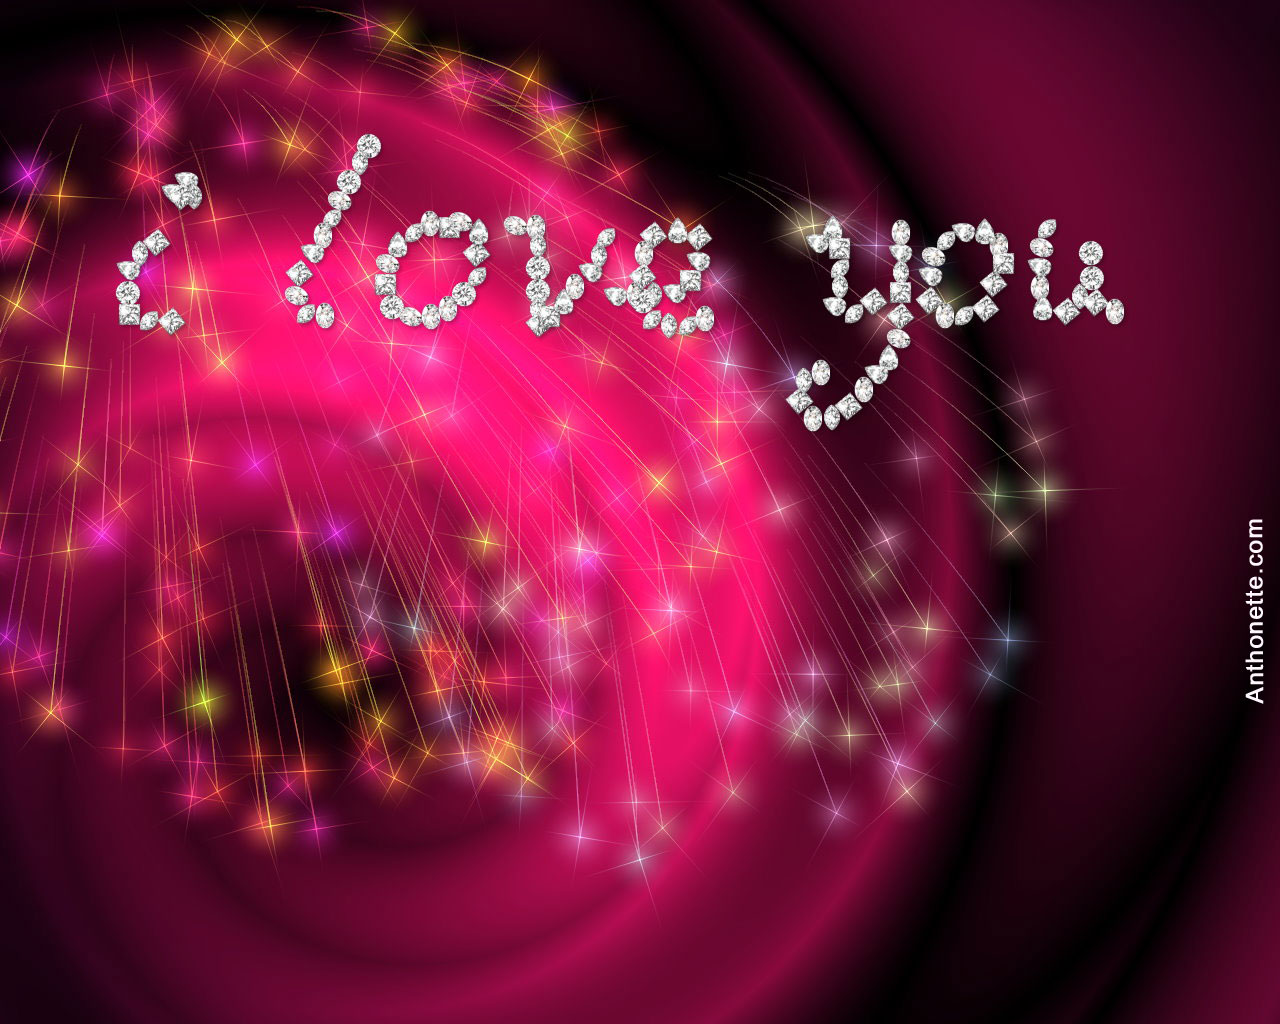 L Love You Hd Wallpaper : Wallpaper i love you papel de Parede #2 ~ Links da WEB